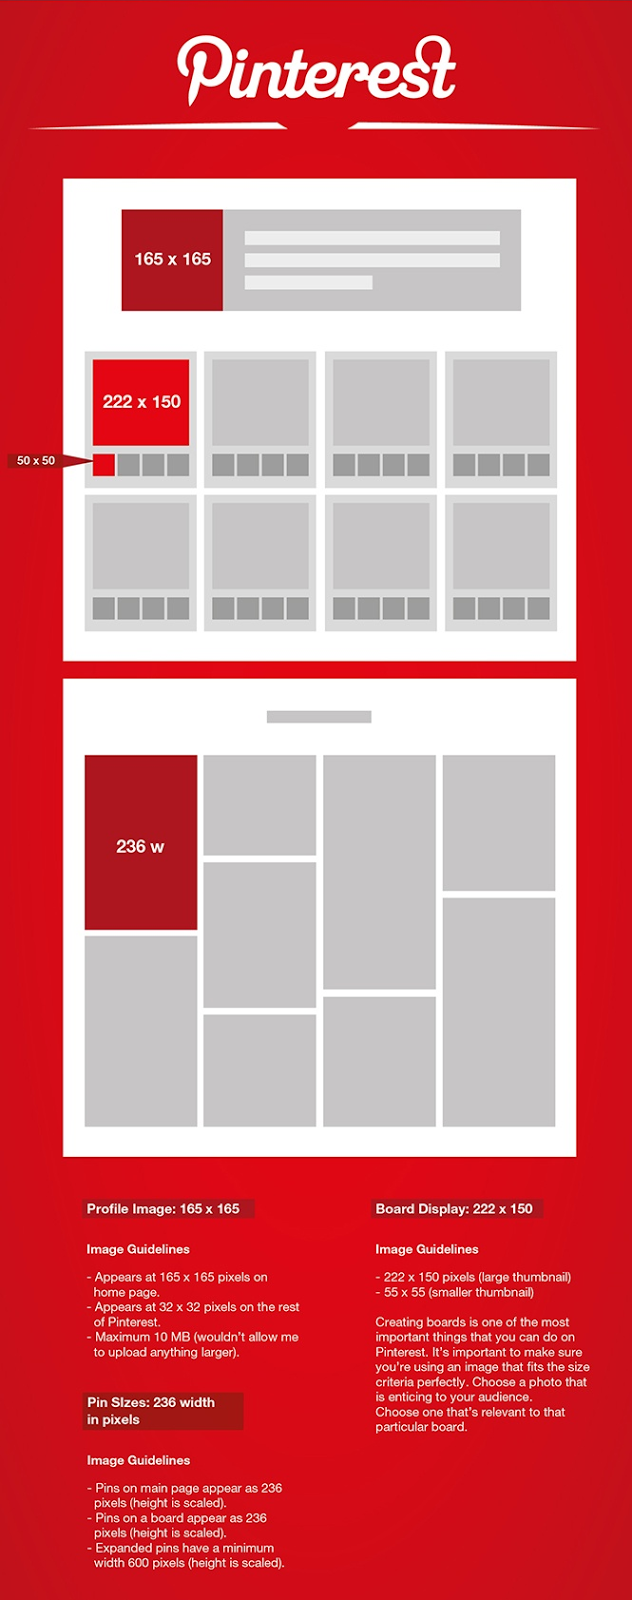 The Photo and Image cover Sizes on Pinterest